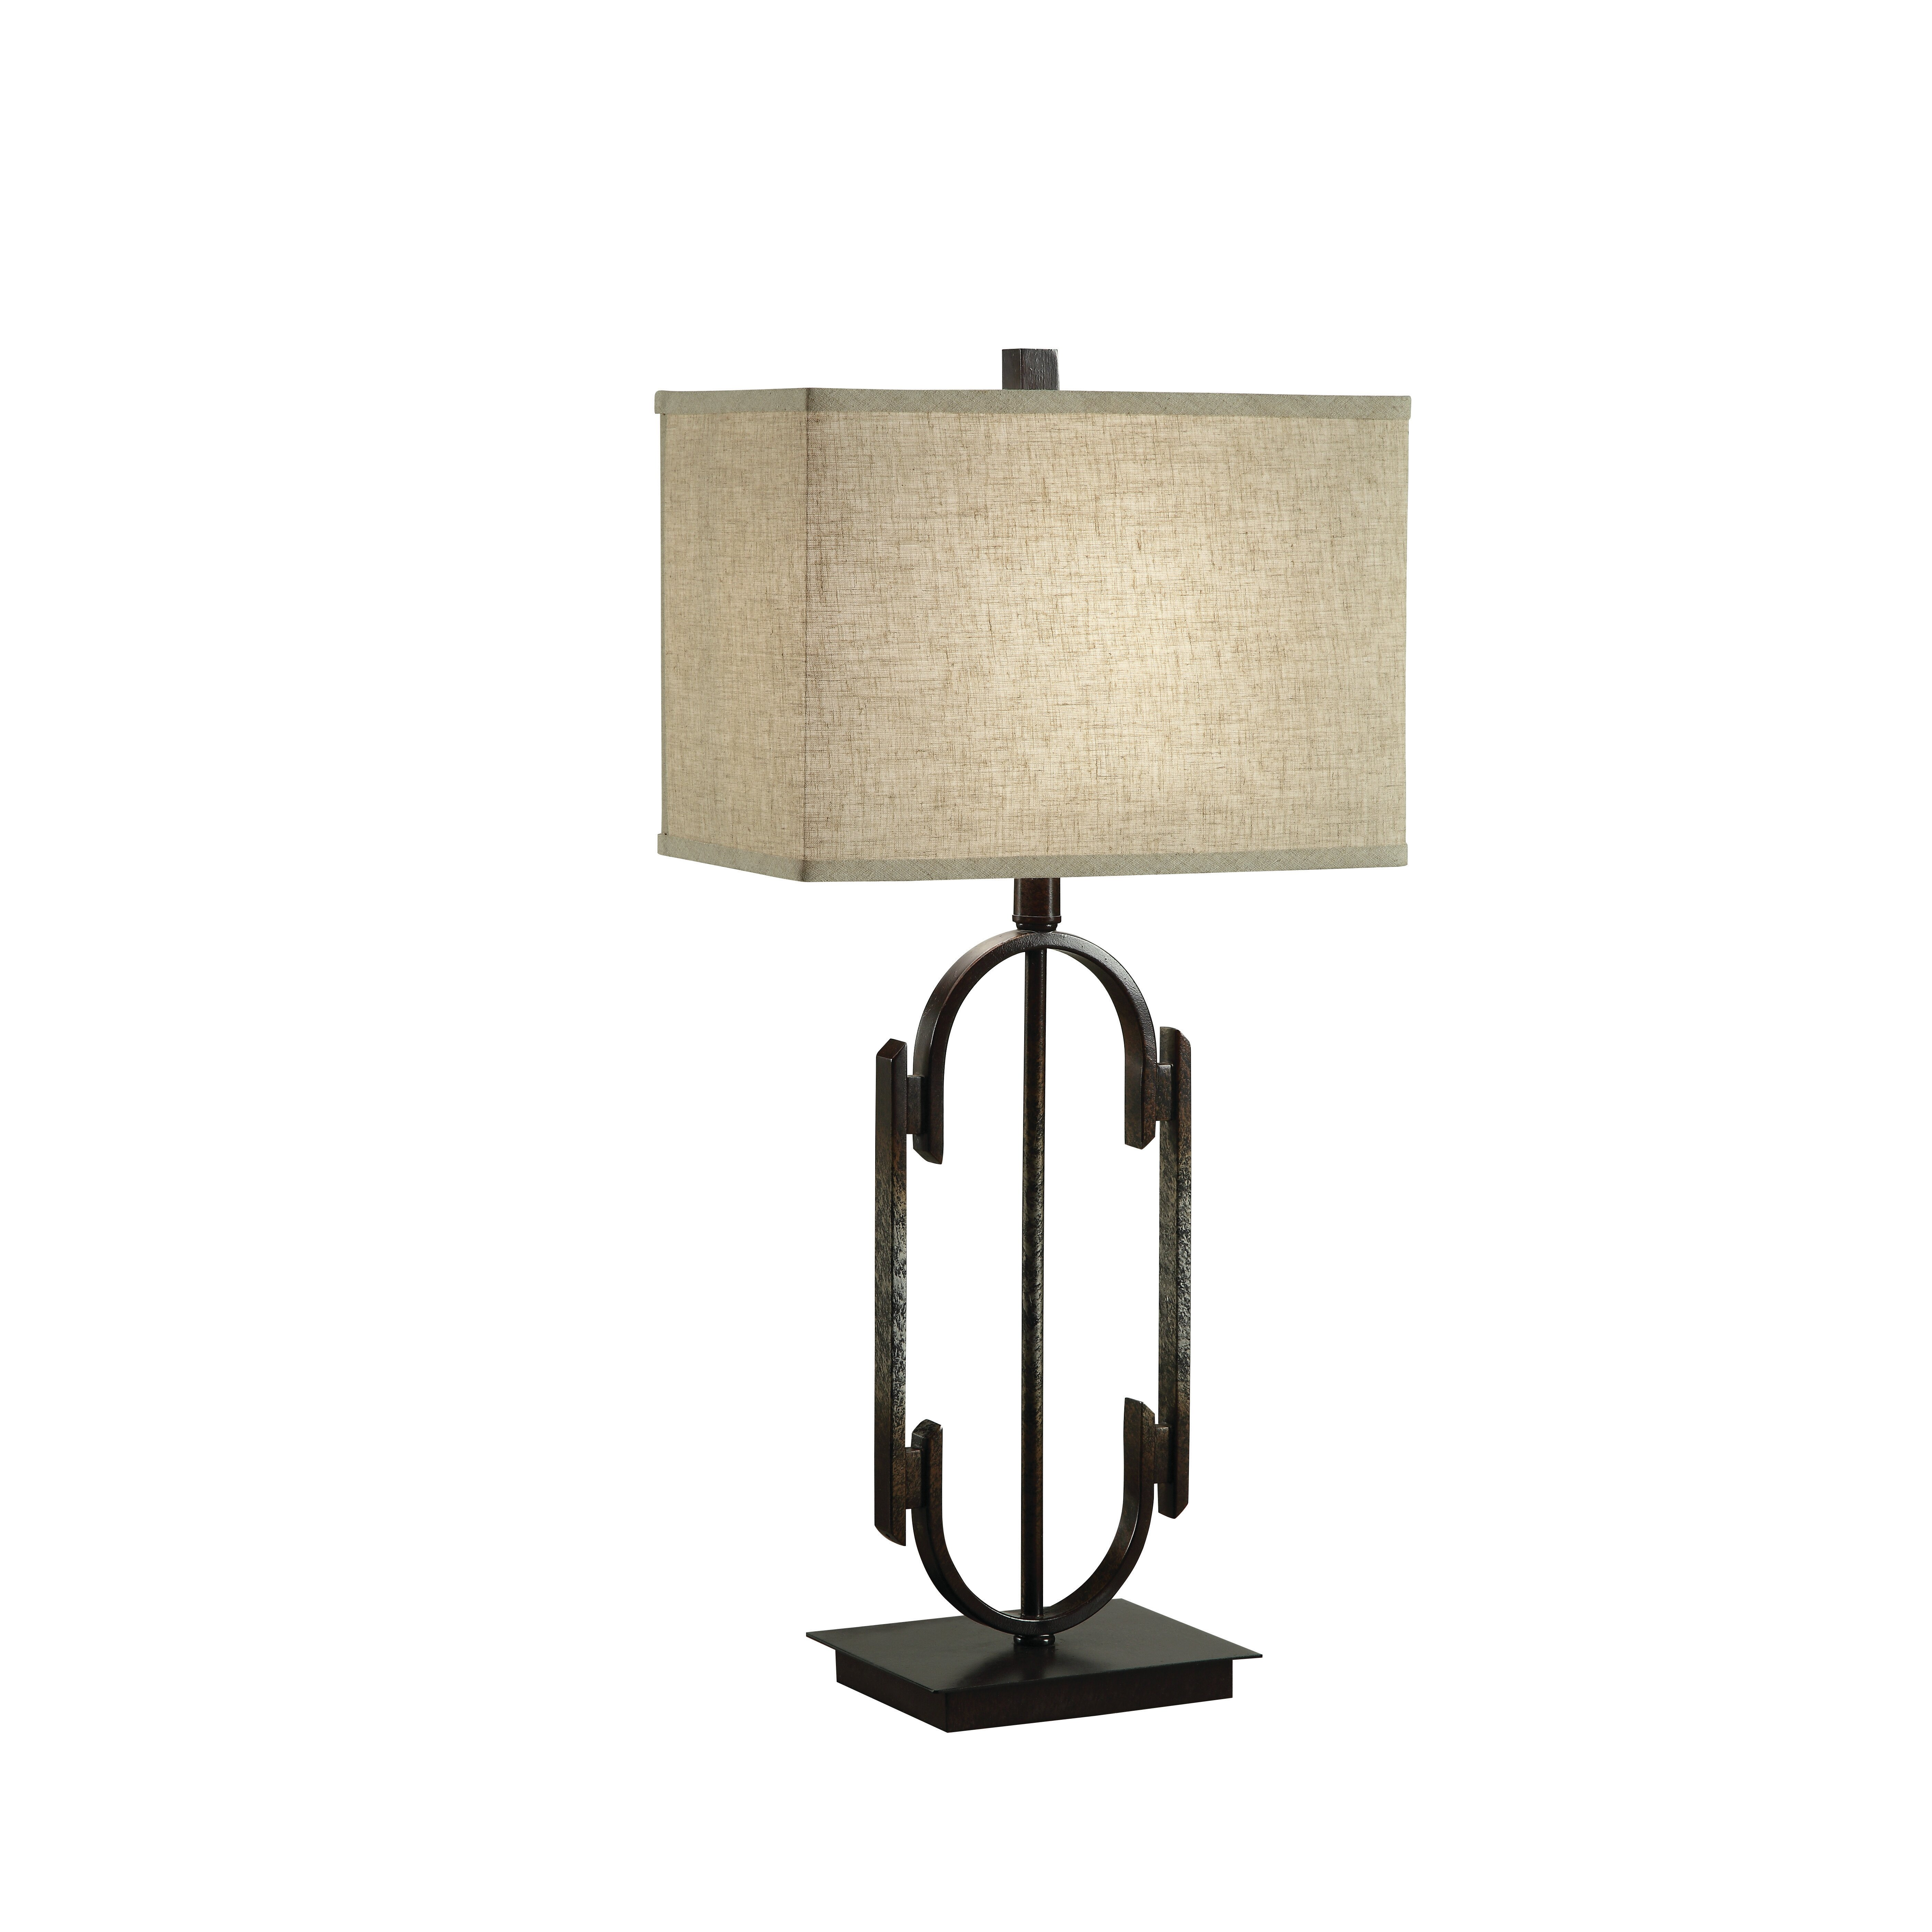 home 29 h table lamp with rectangular shade reviews wayfair. Black Bedroom Furniture Sets. Home Design Ideas